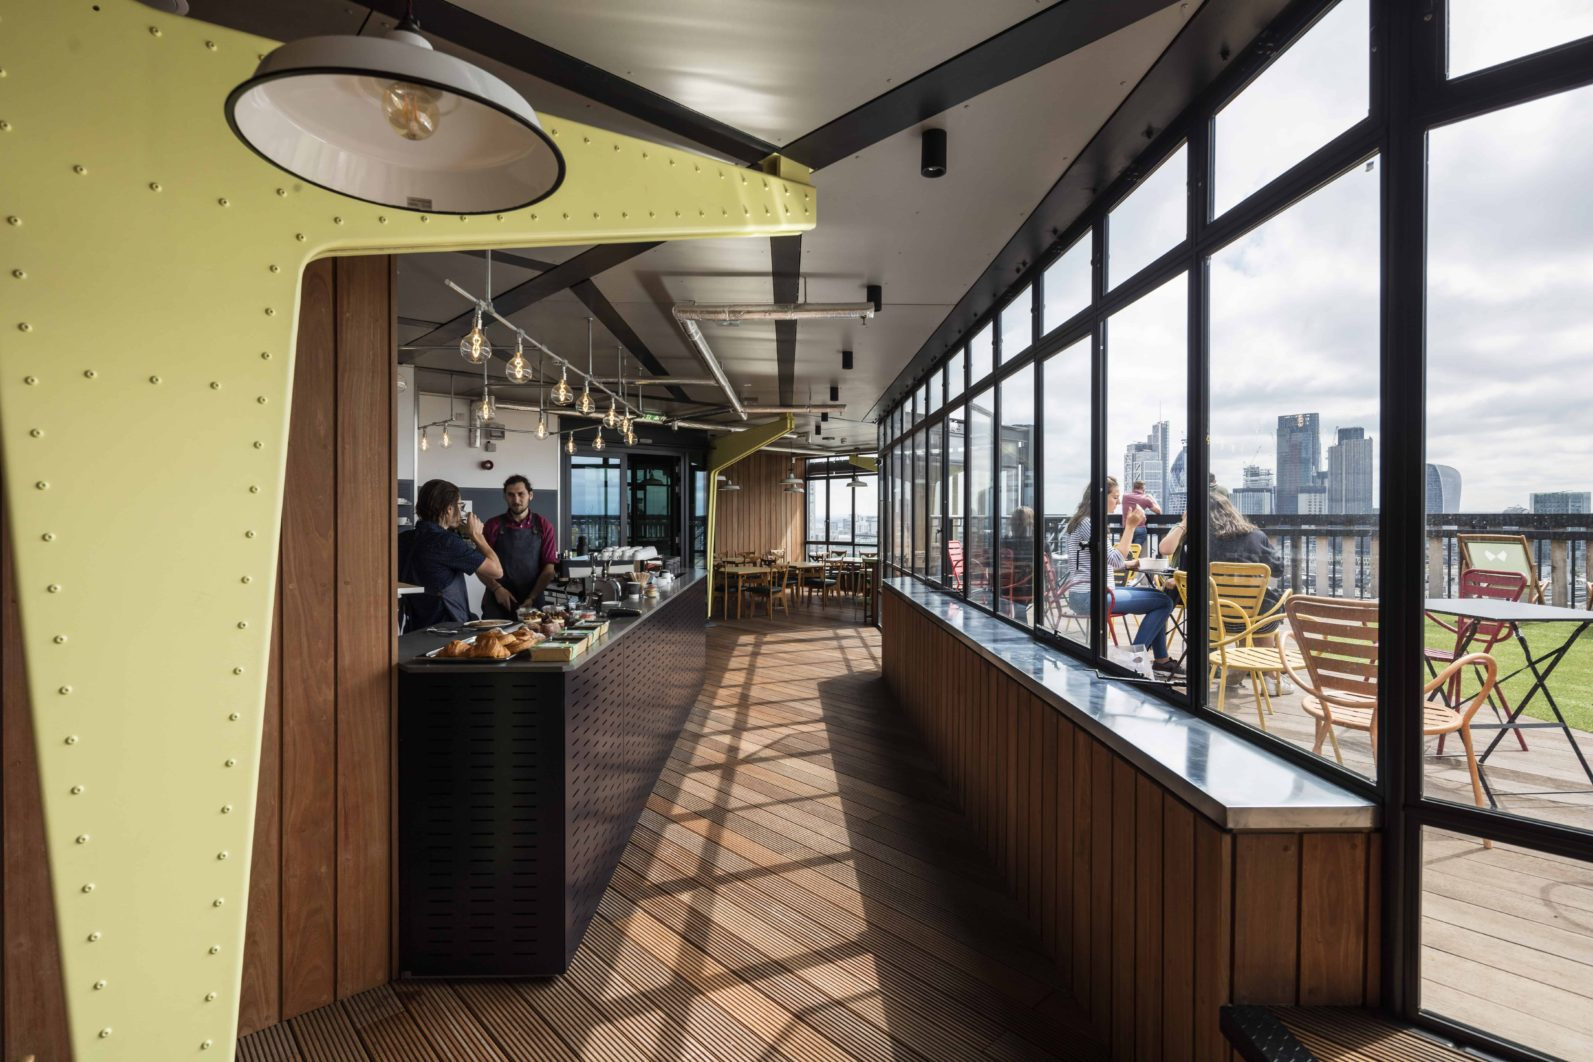 White Collar Factory rooftop cafe and venue space